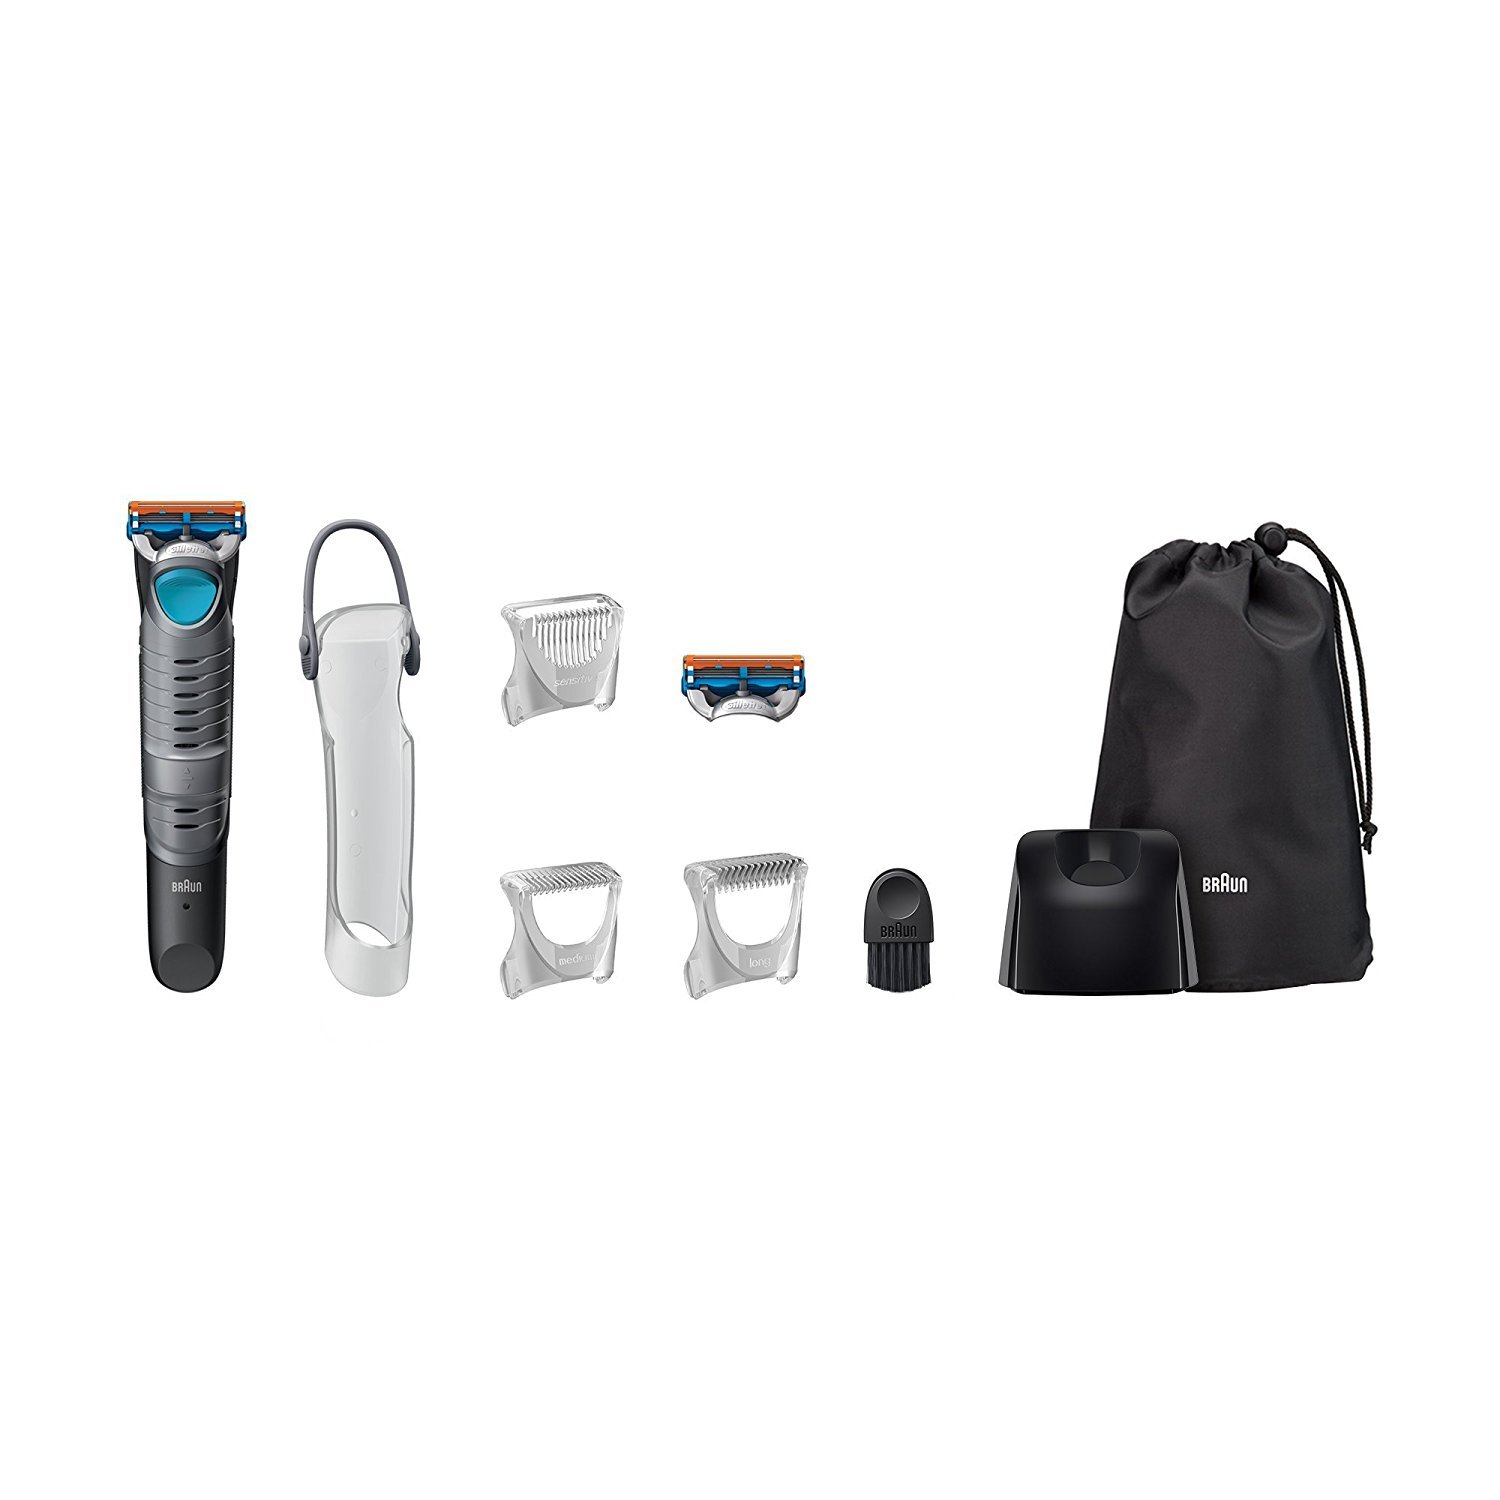 Braun CruZer6 Body Trimmer